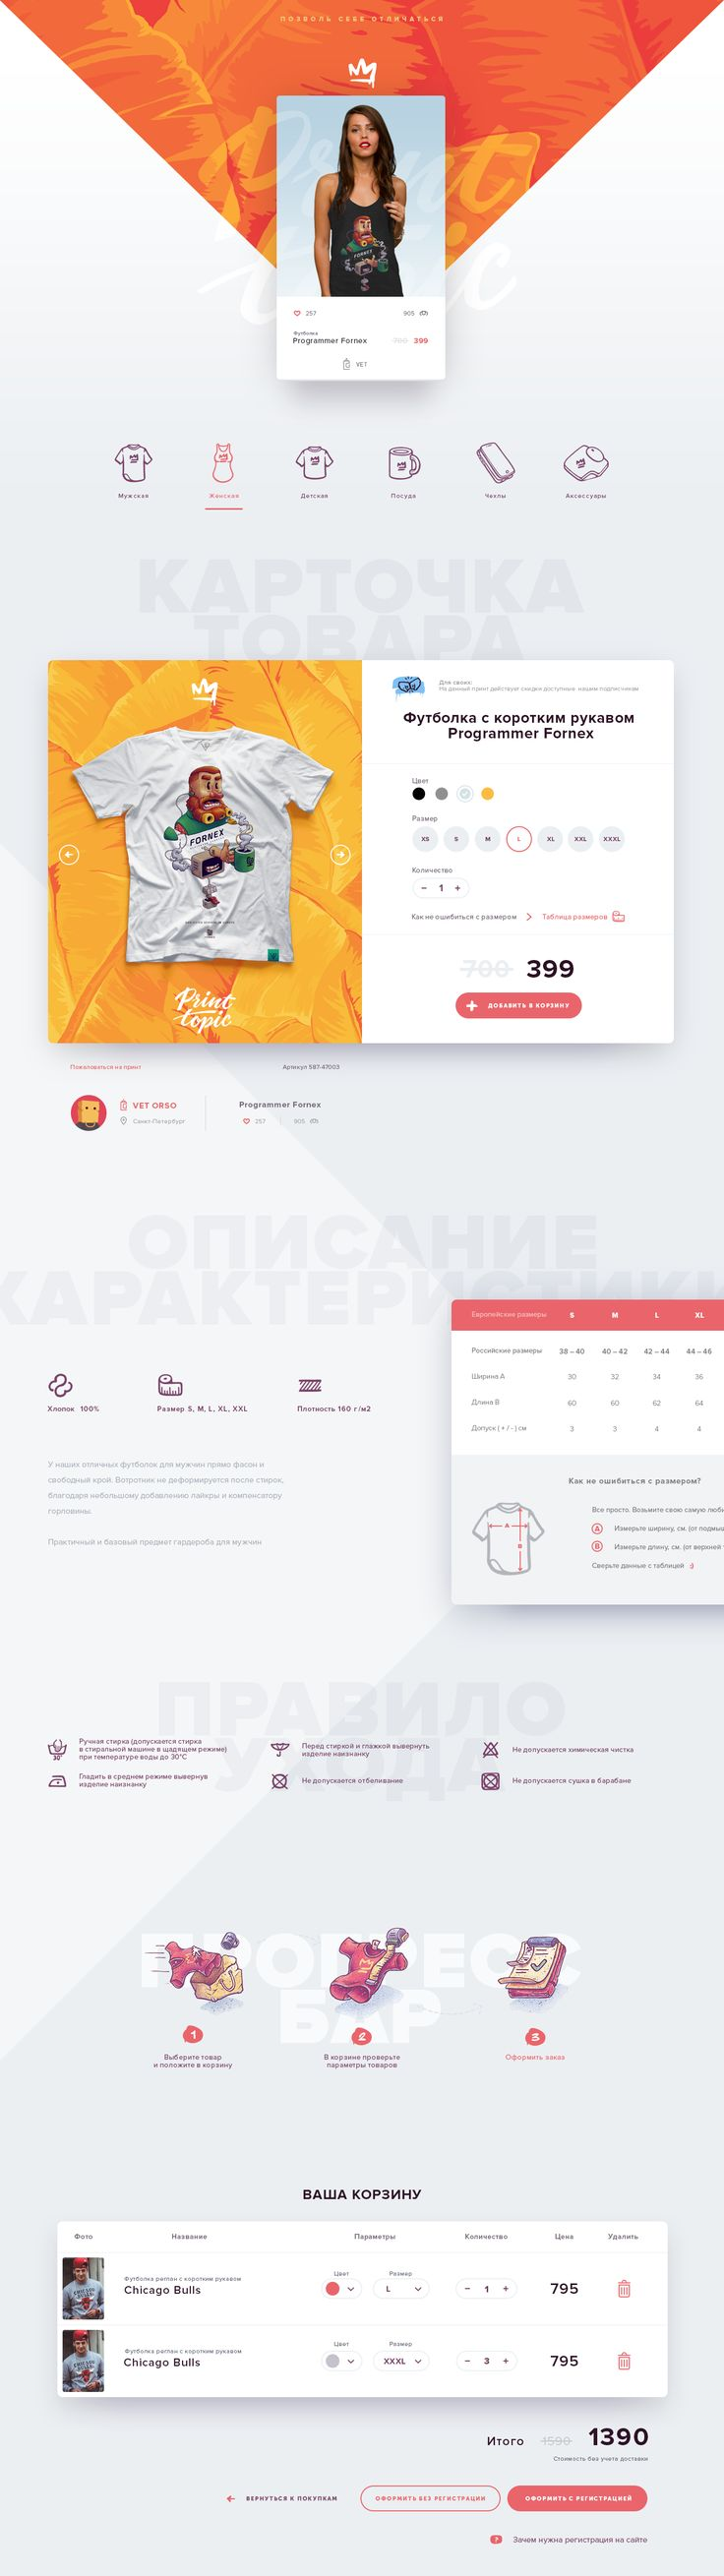 Print Topic Shop | Web design | Ui | illustration on Behance